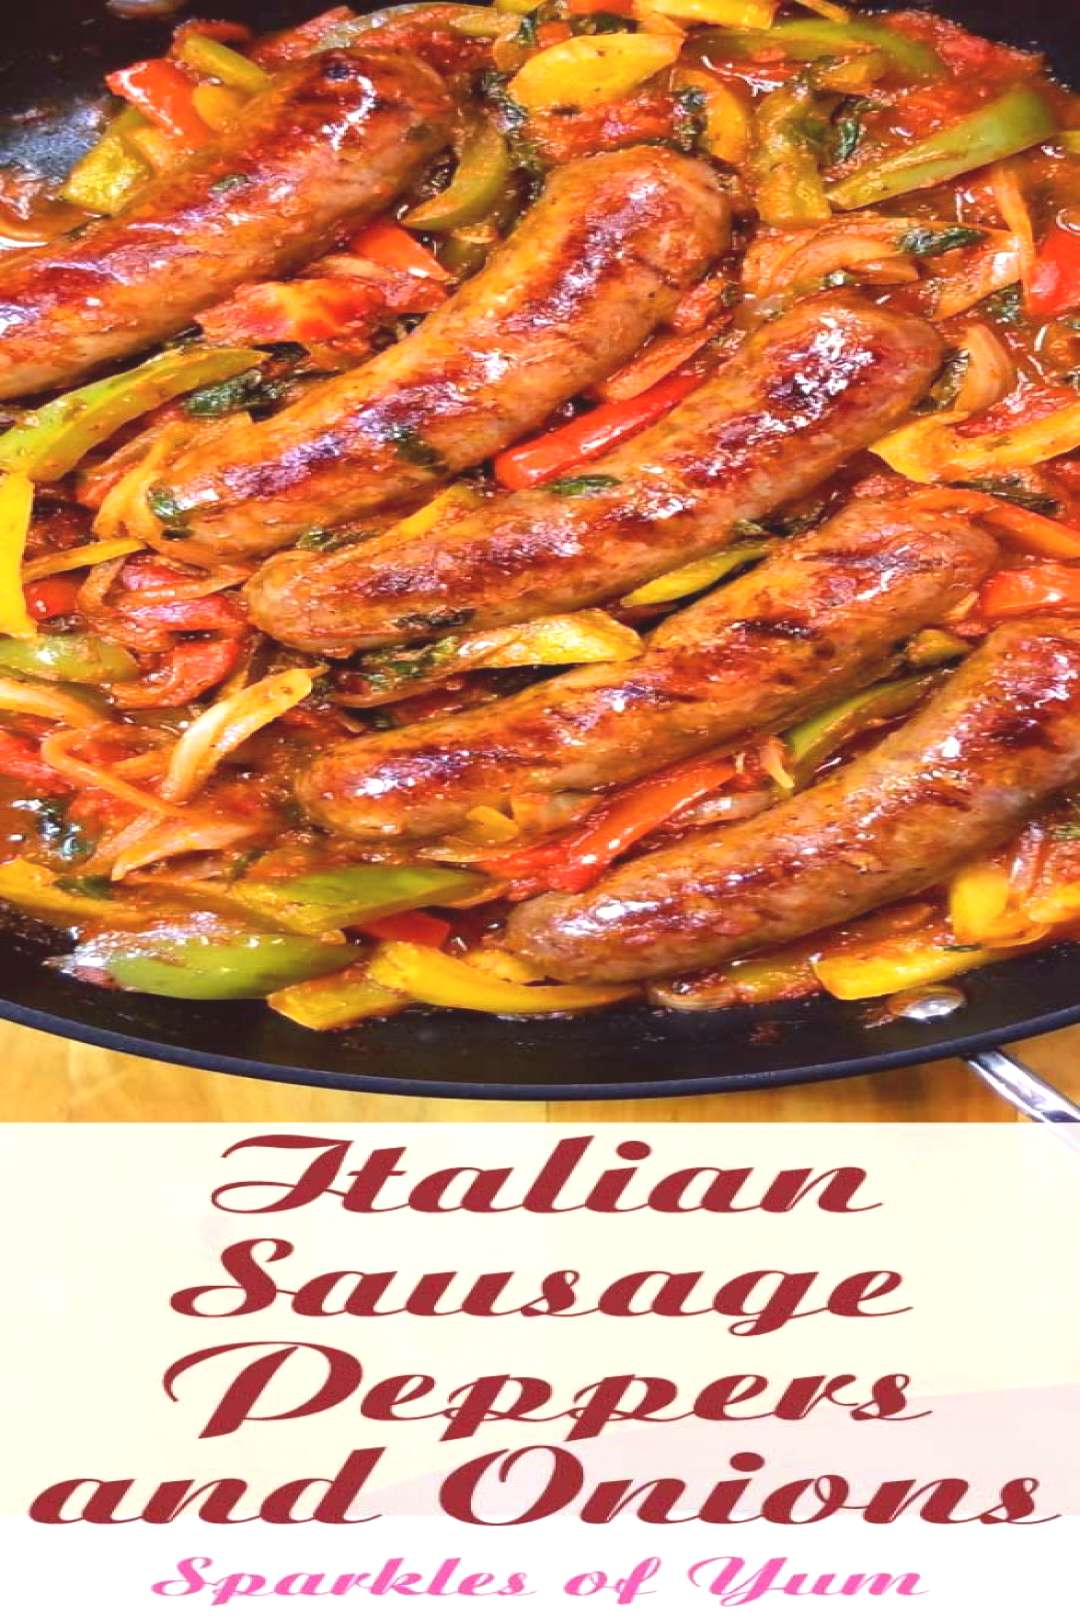 Quick easy and delicious one skillet dinner! This recipe forItalian Sausage Peppers and Onions is s